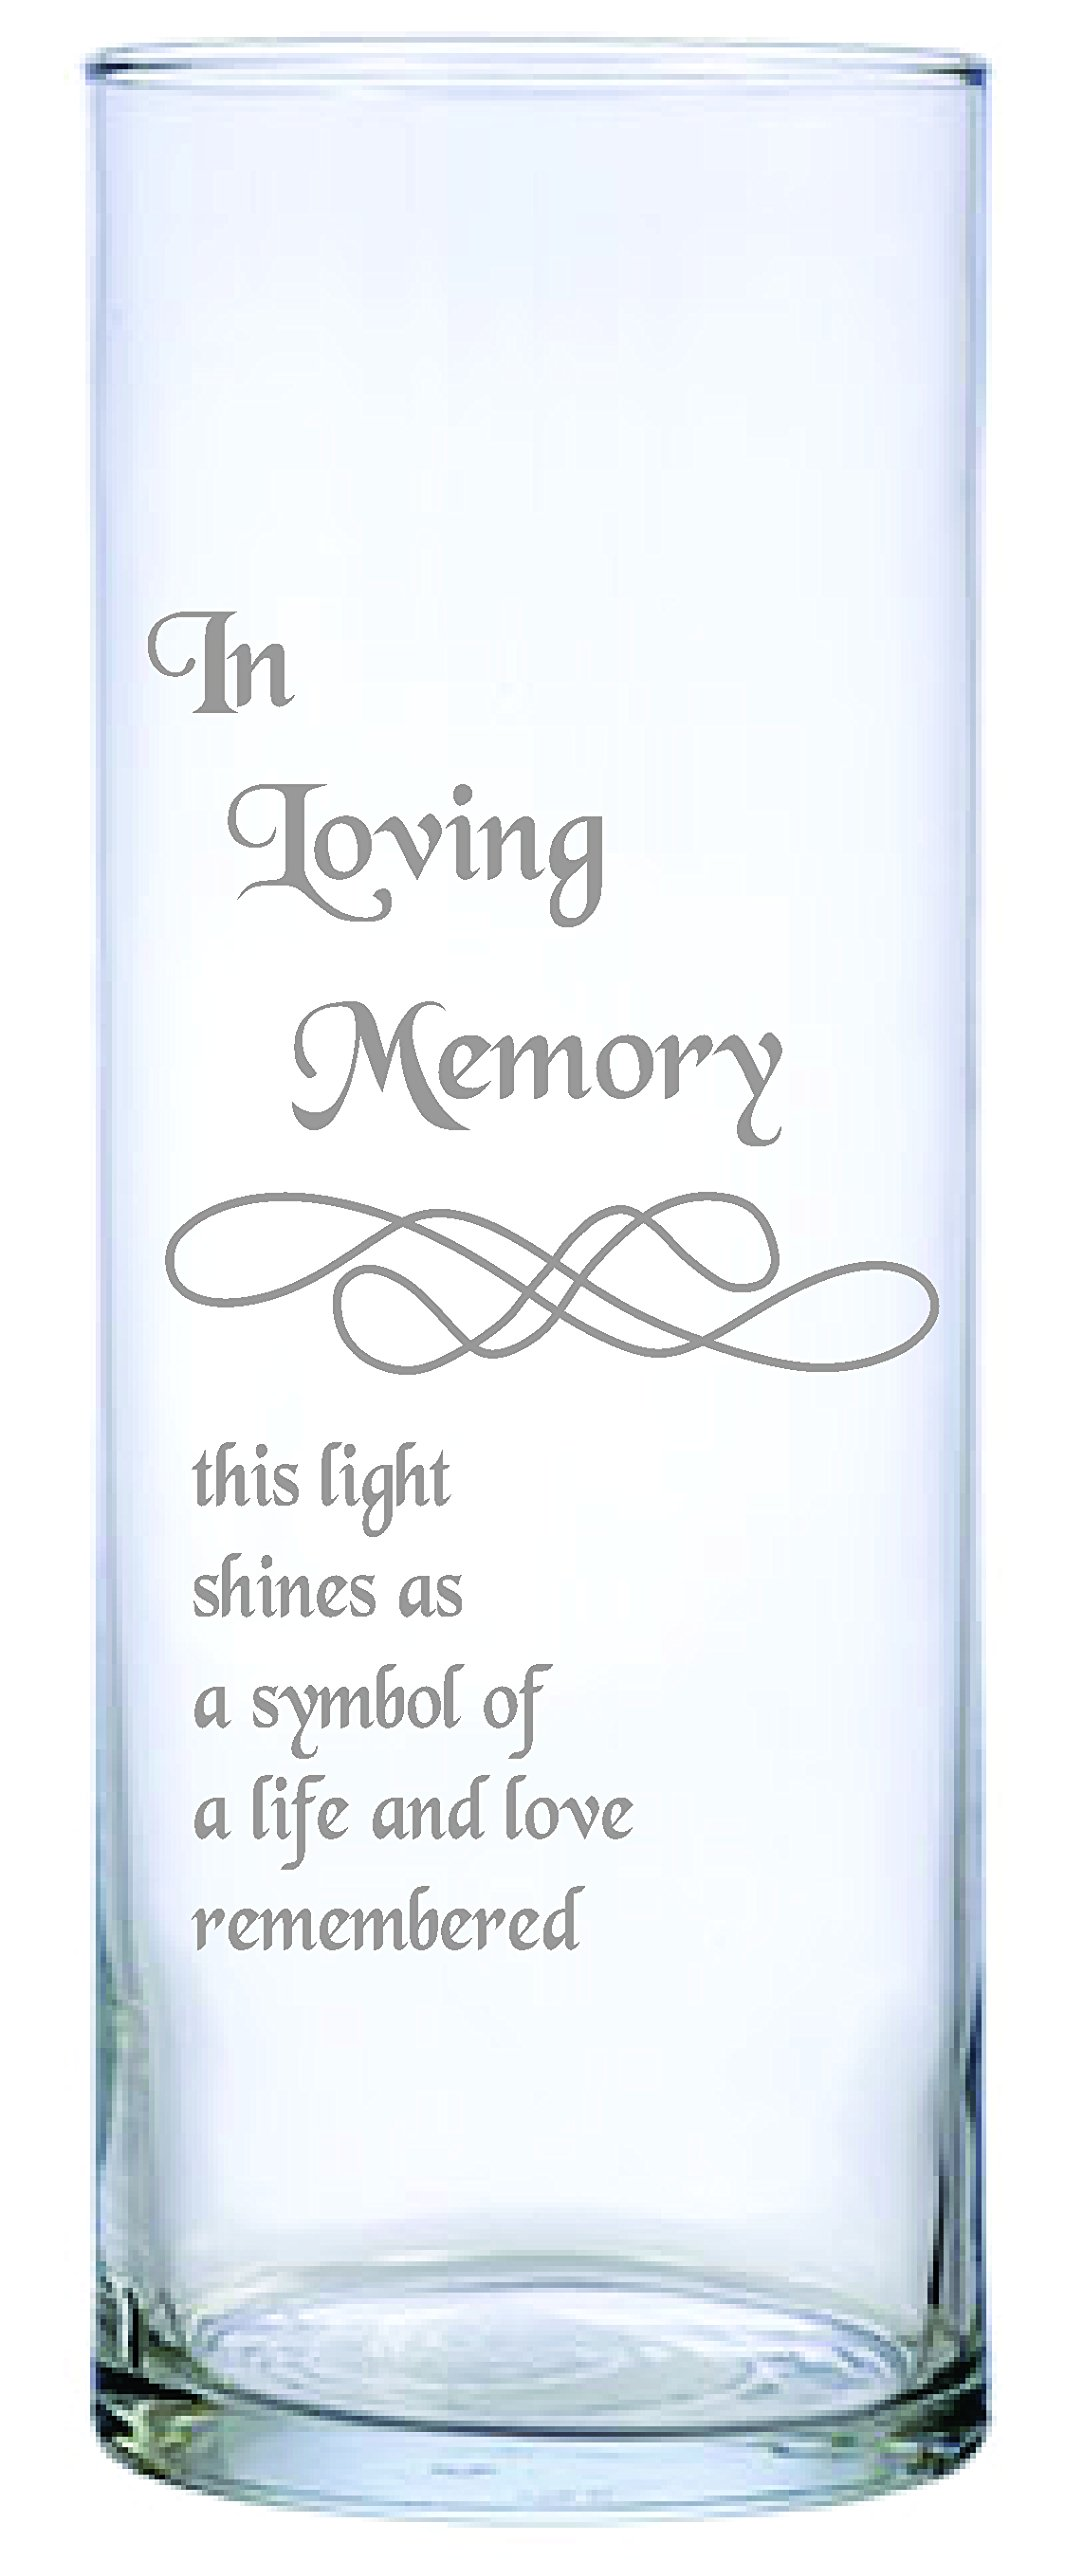 IE Laserware Beautifully Laser Etched Memorial Candle Comes Complete with 3'' Floating Candle. Just Add Water and Light The Wick